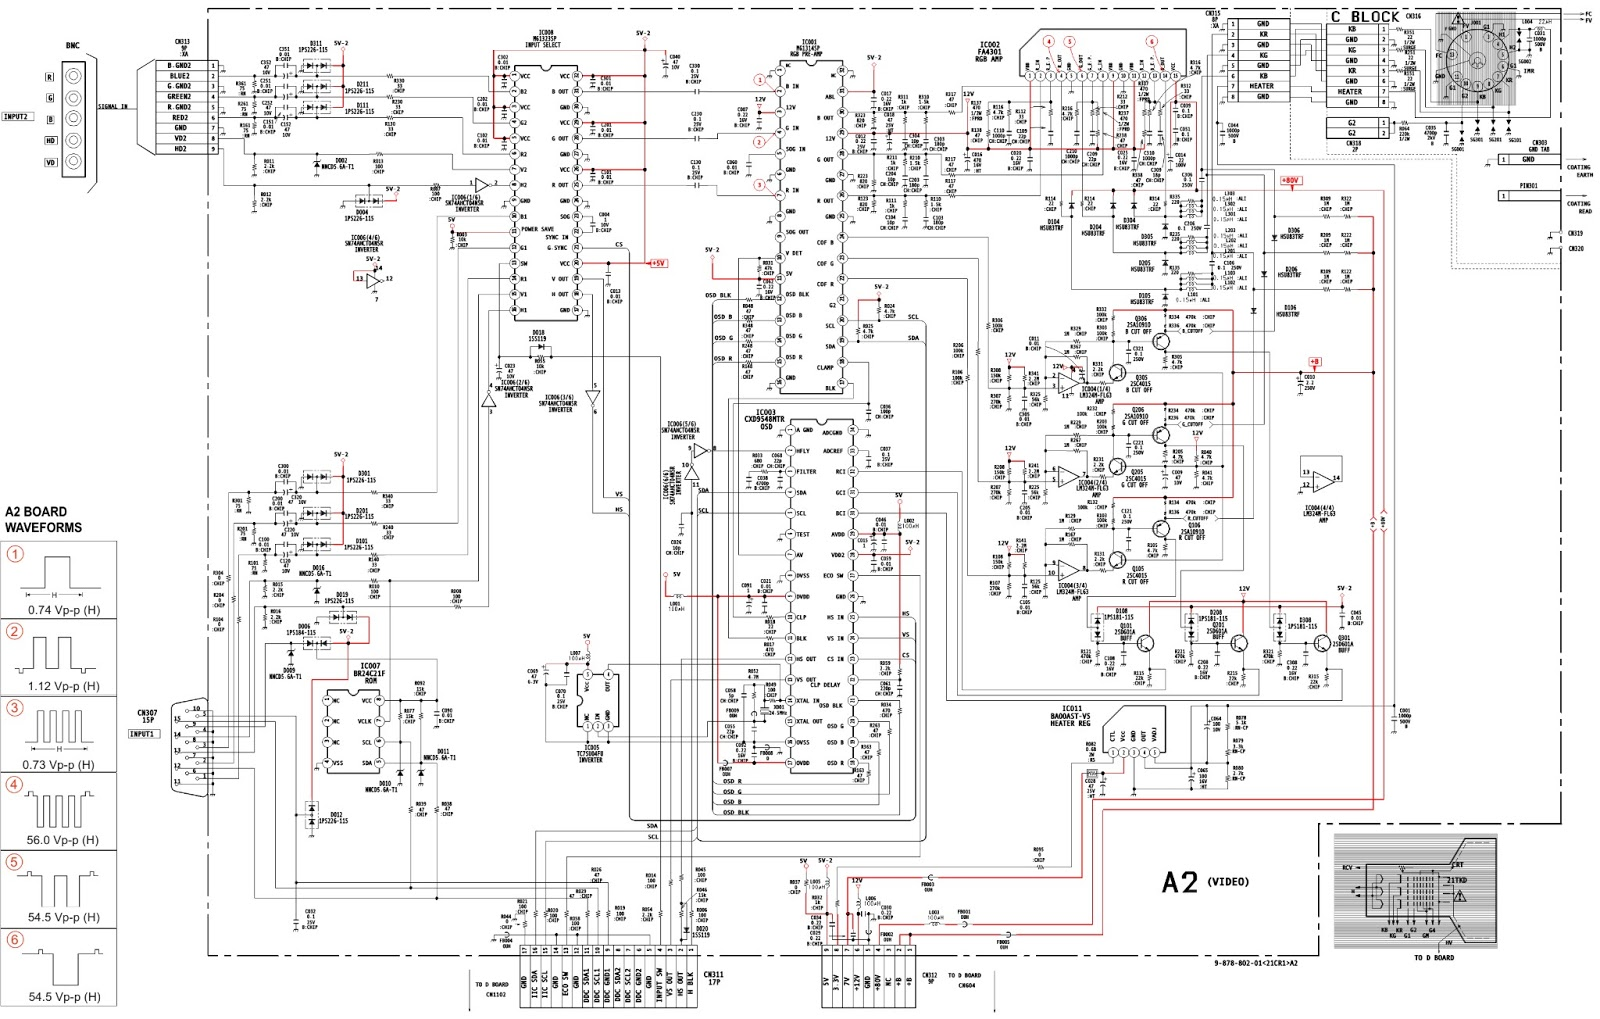 Ps3 Wiring Diagram furthermore Connection Guide together with Isx Oil Pressure Sensor Location moreover Db15 Connector Pinout Diagram moreover 9607937. on av wiring diagram